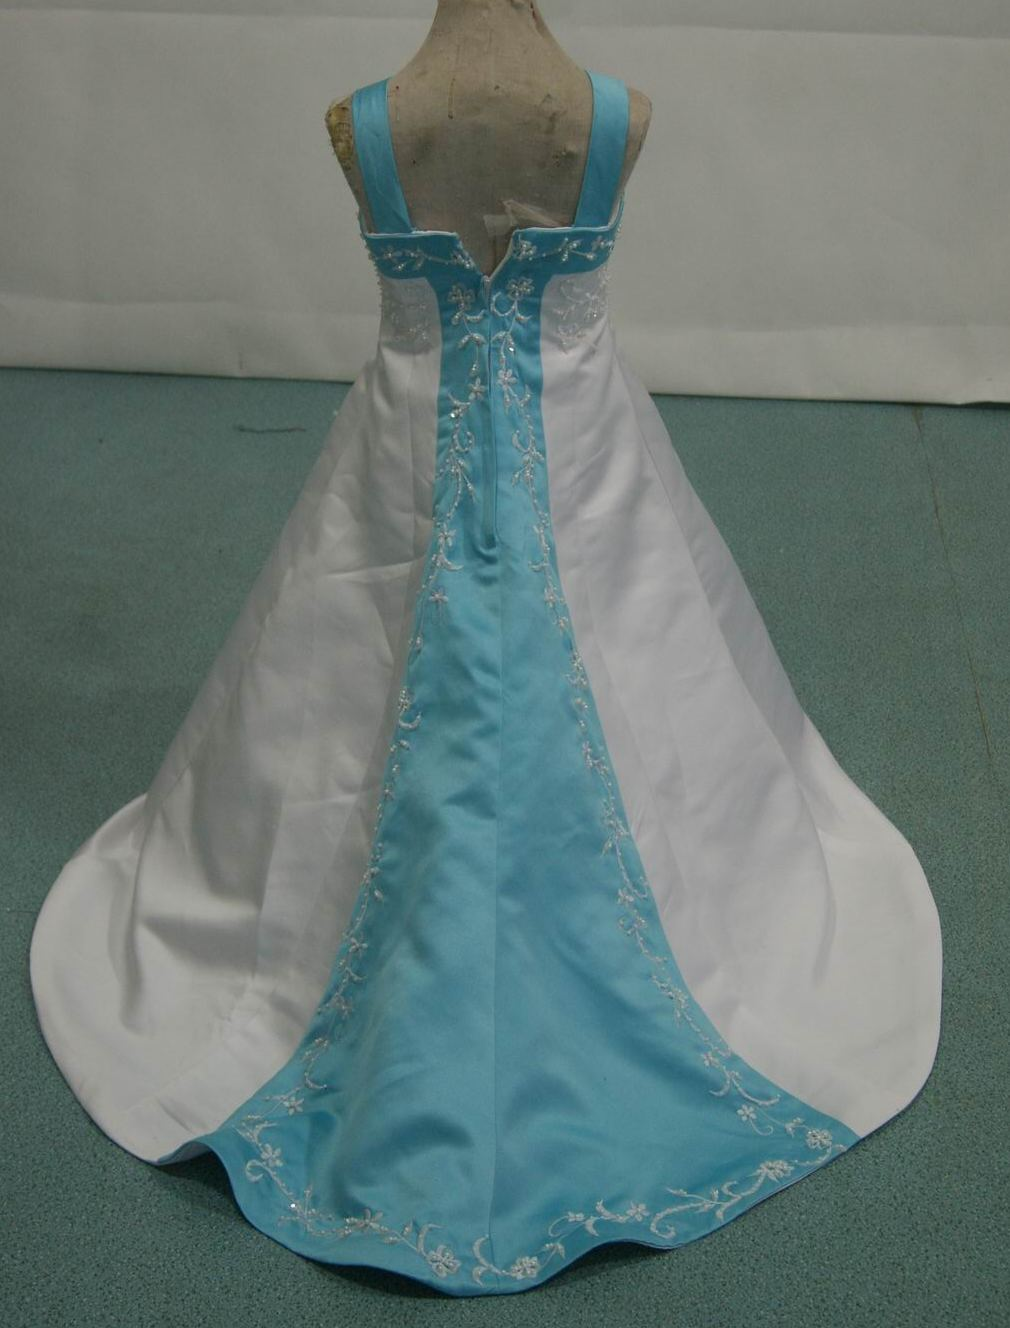 miniature bridal gown in white and pool blue